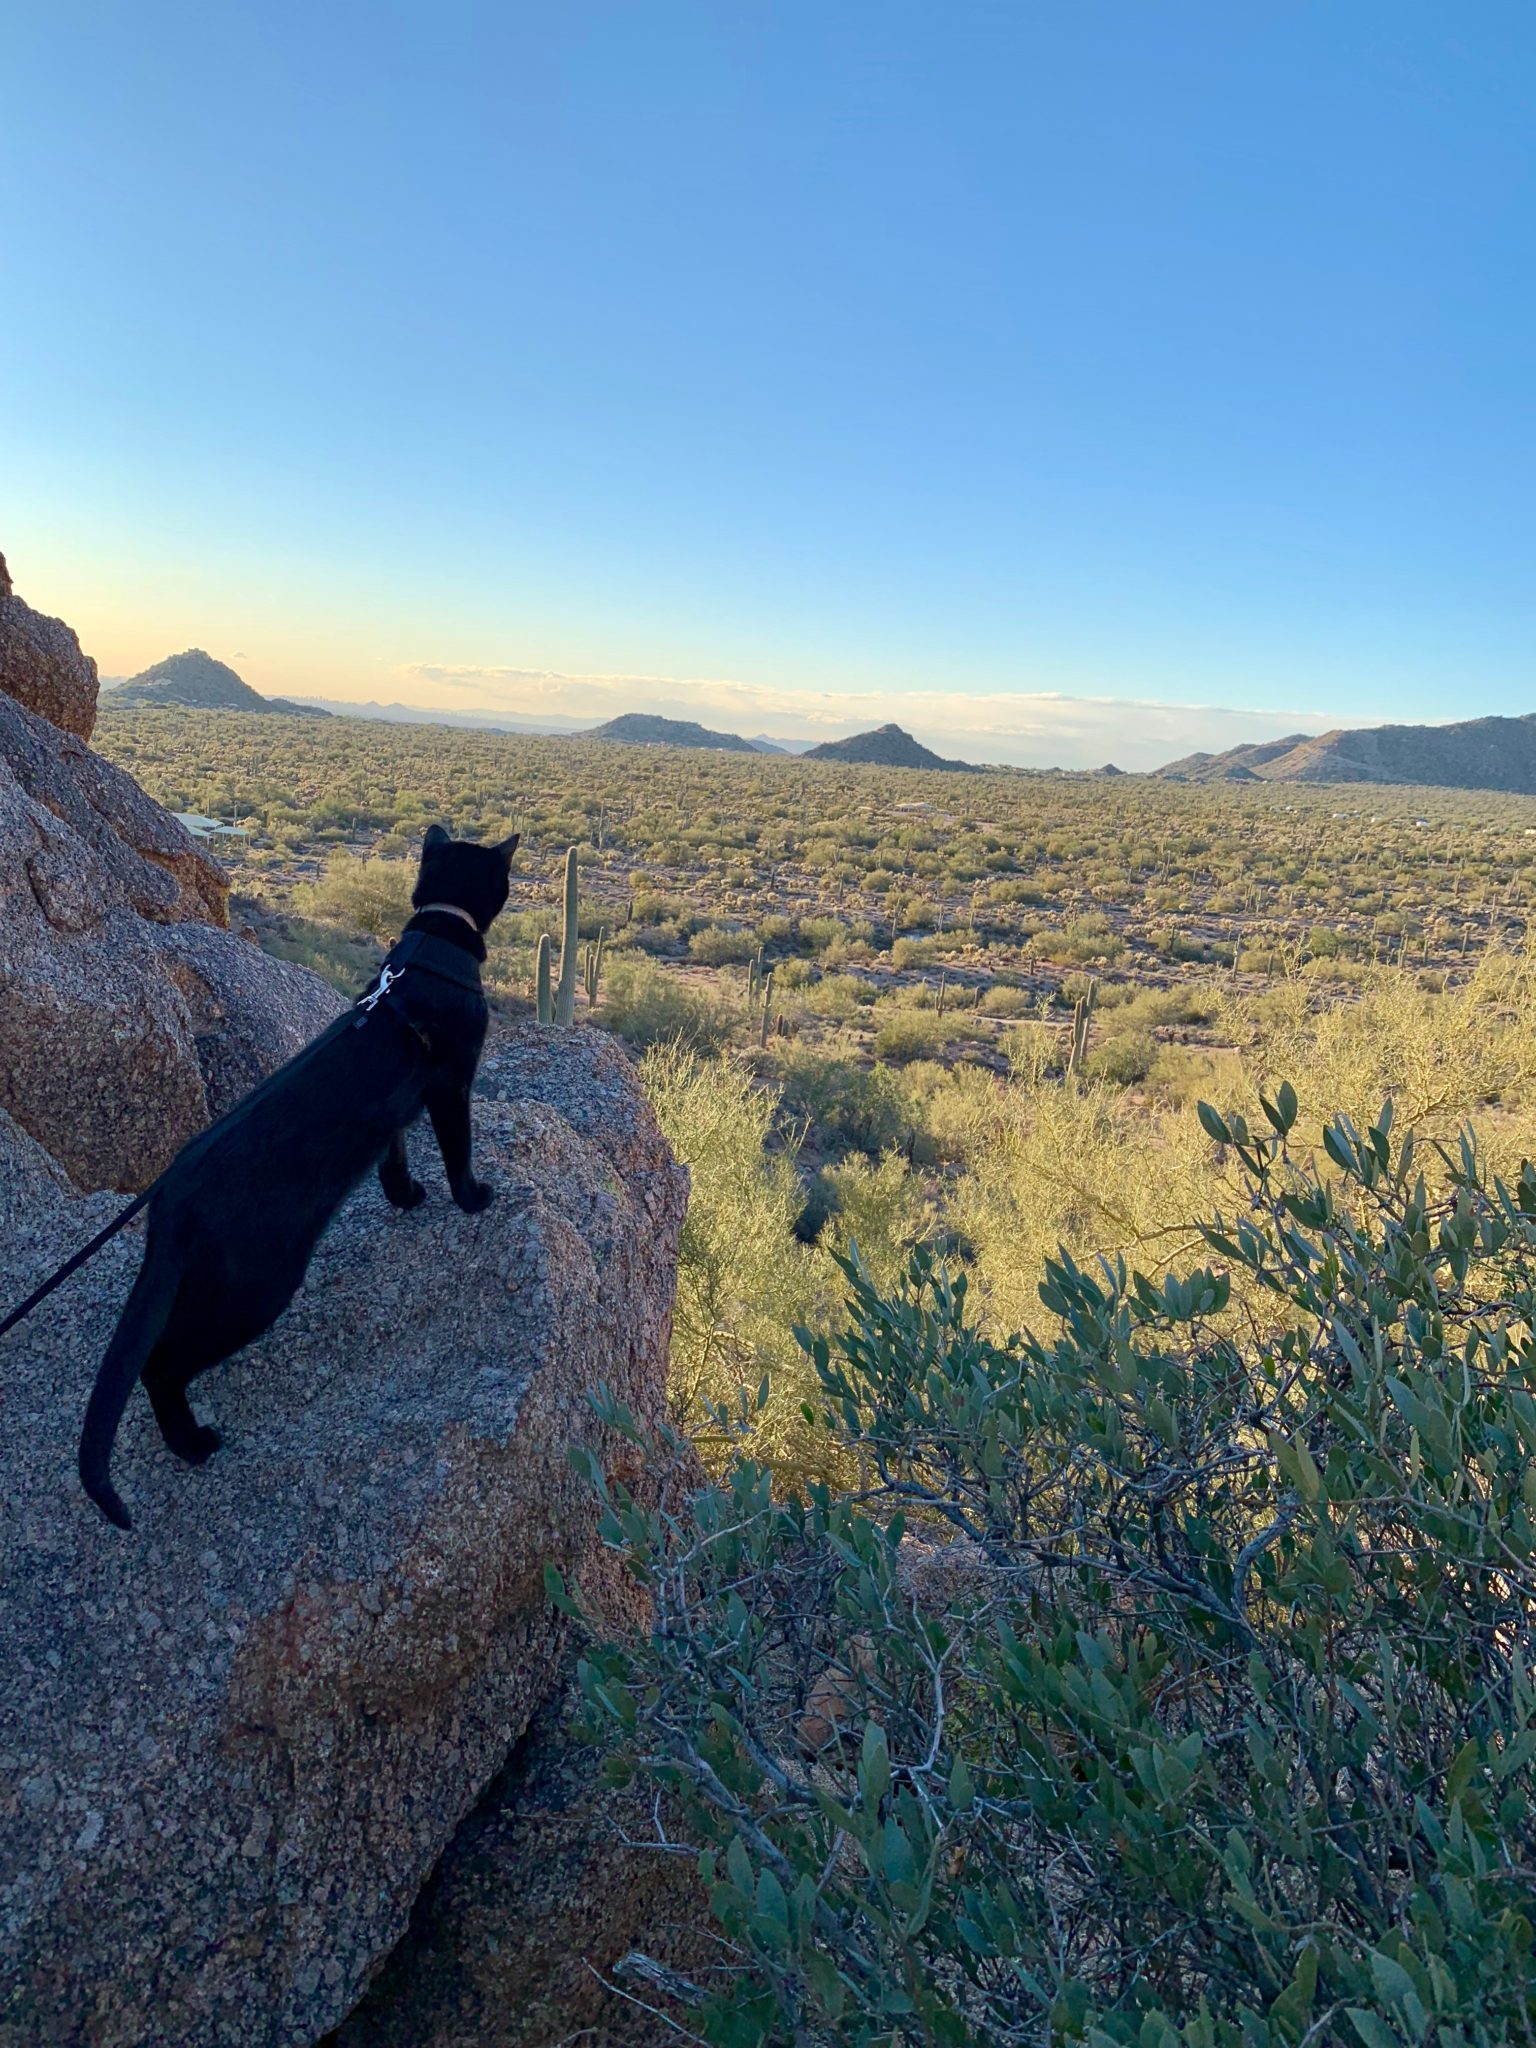 Cash adventure cat overlooks Sonoran Desert